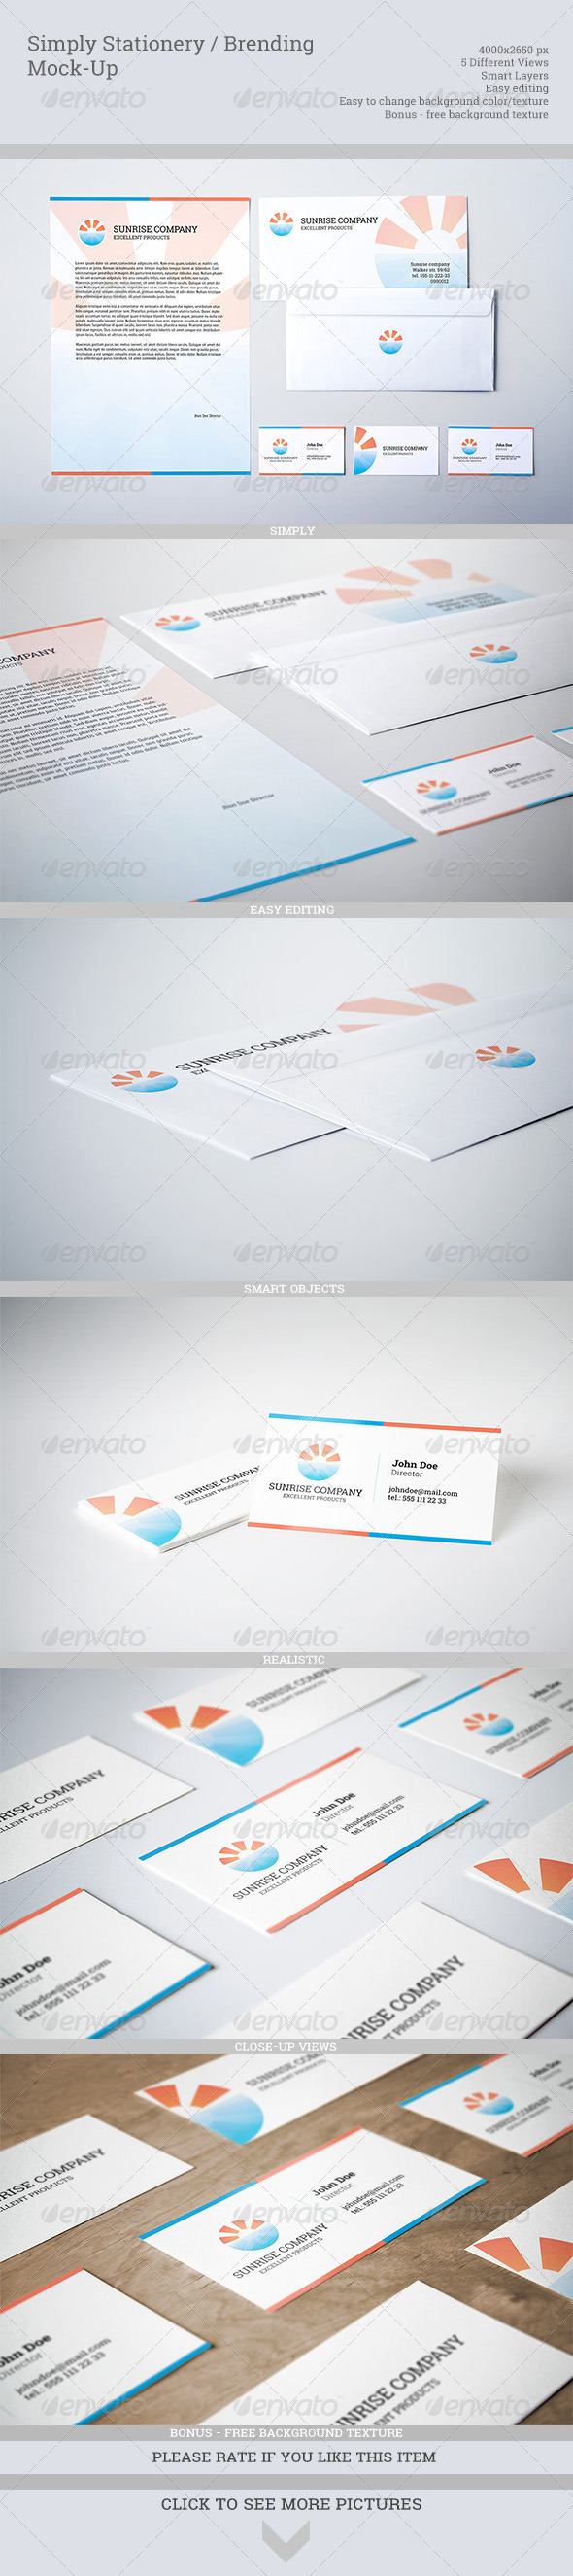 GraphicRiver Simply Stationery Branding Mock-Up 5353499